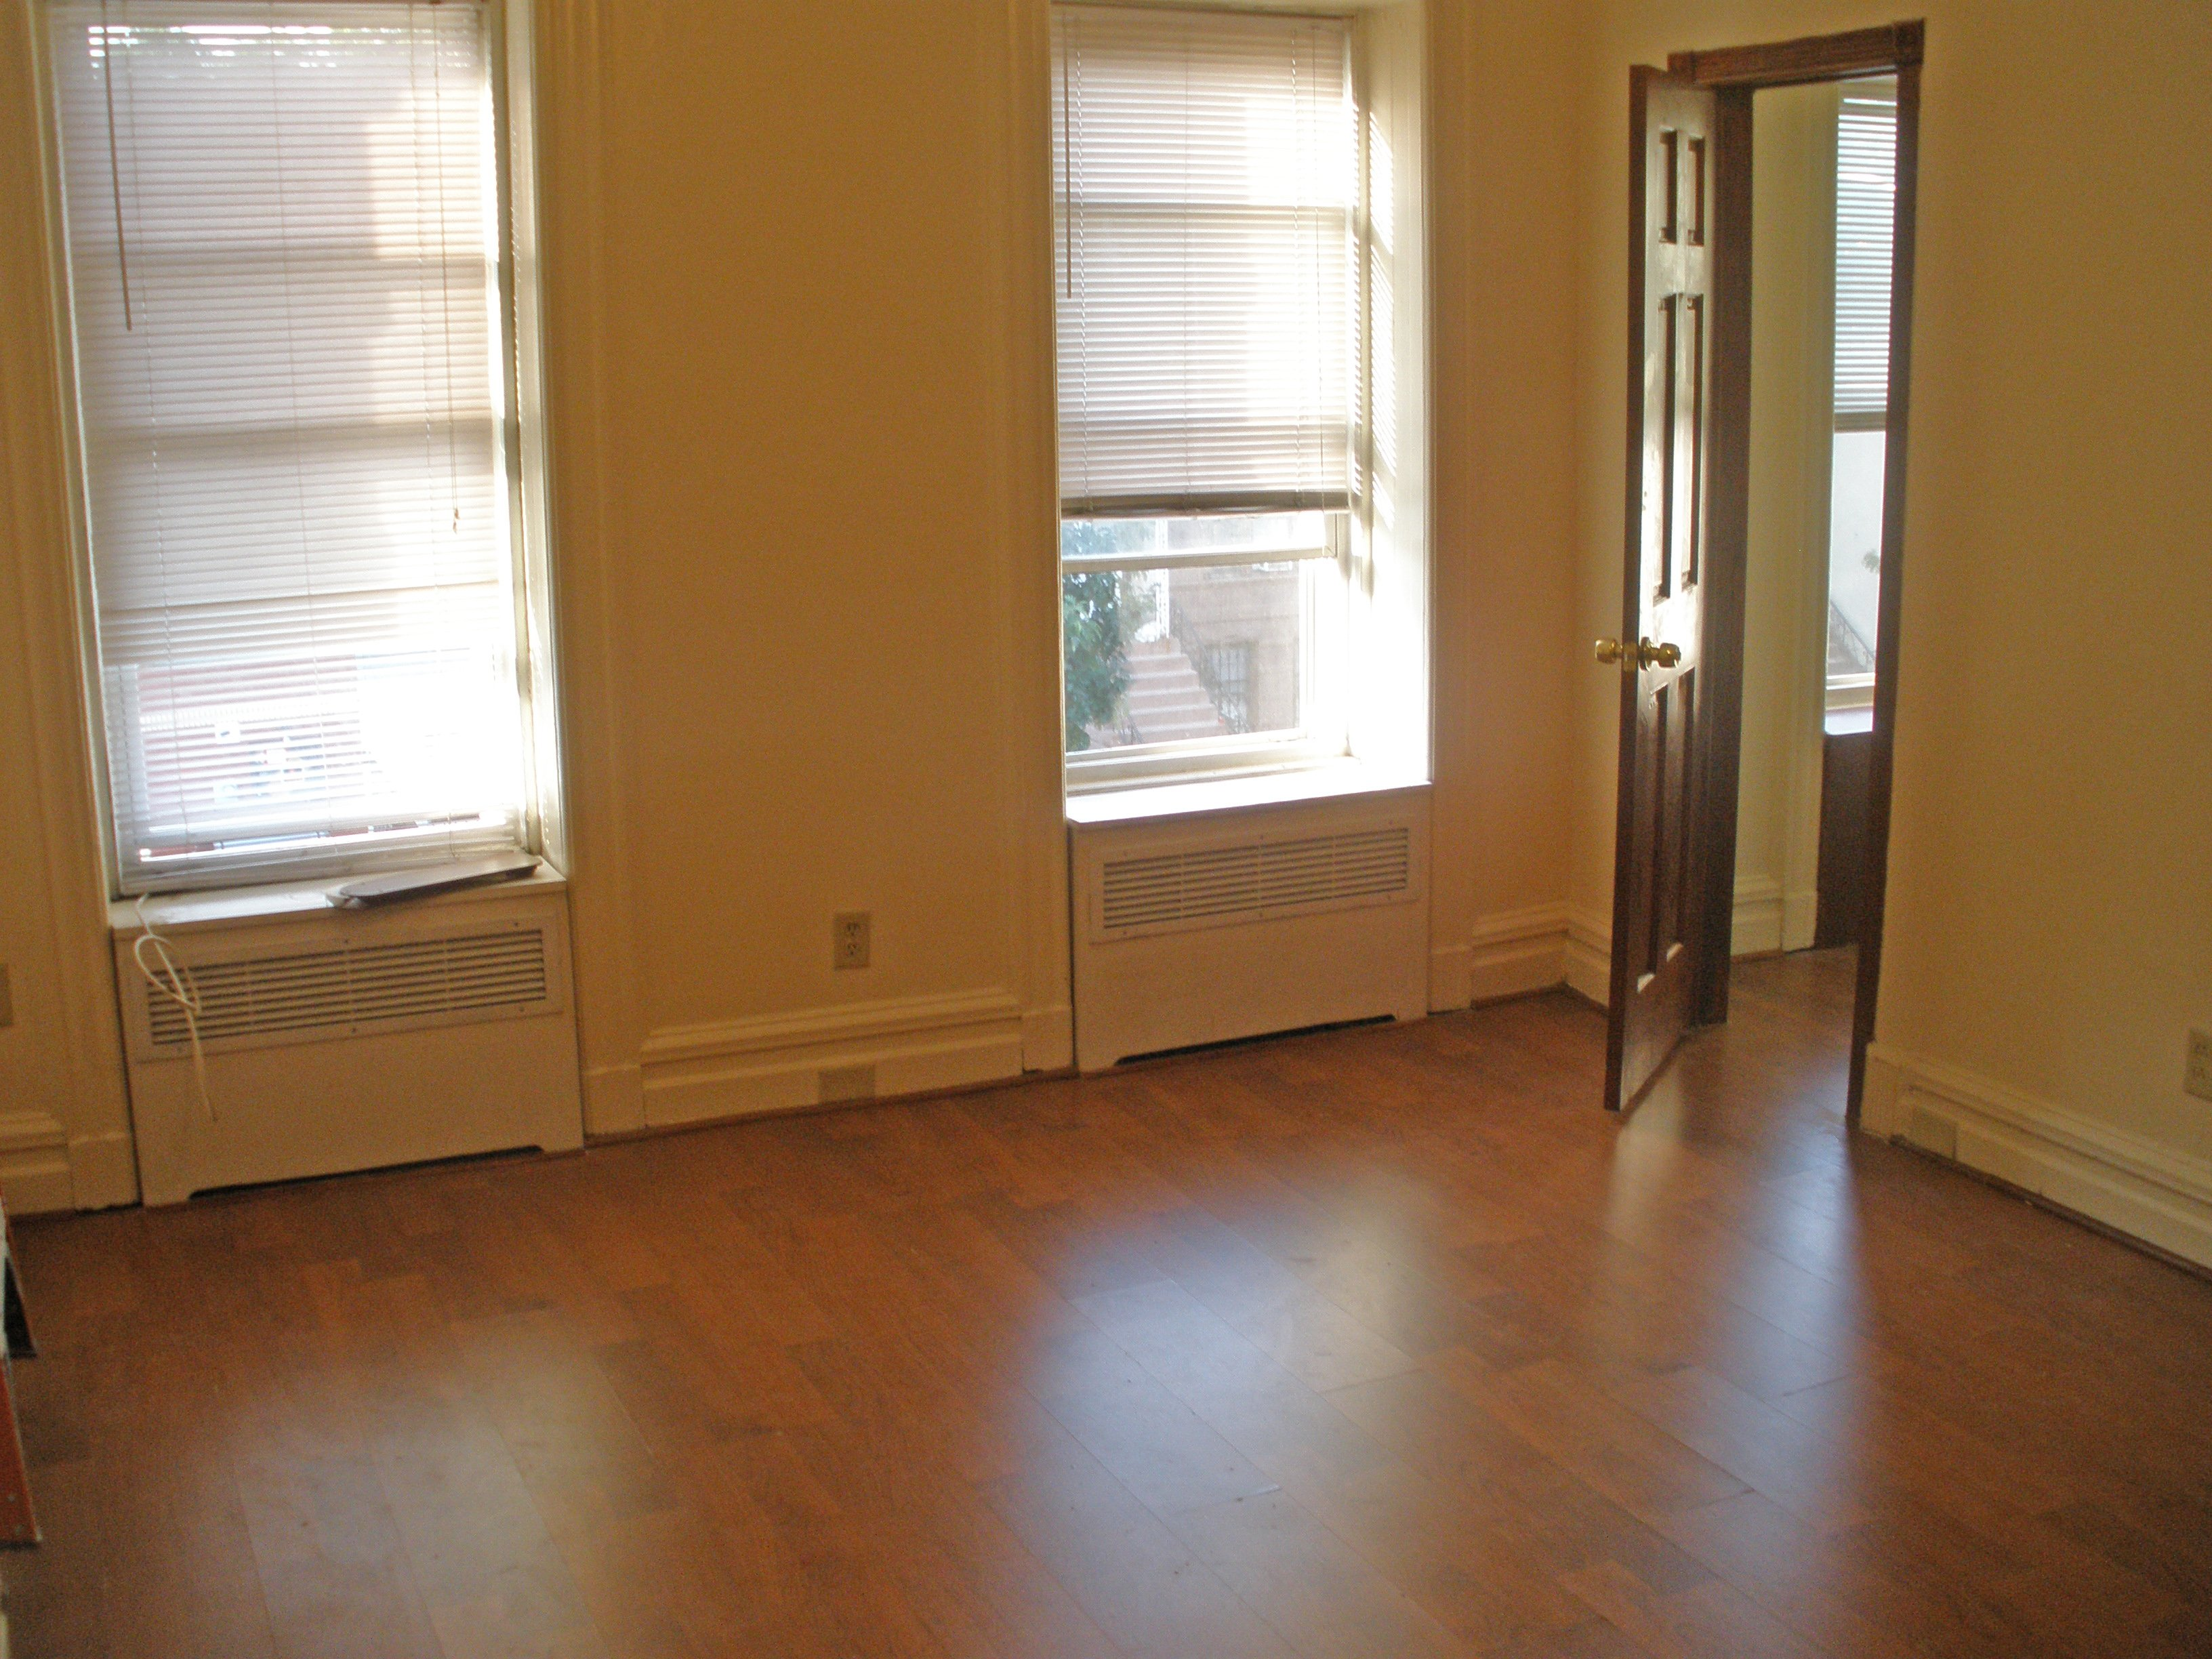 Bed Stuy  Bedroom Apartment For Rent Brooklyn CRG - Two bedroom apartments for rent